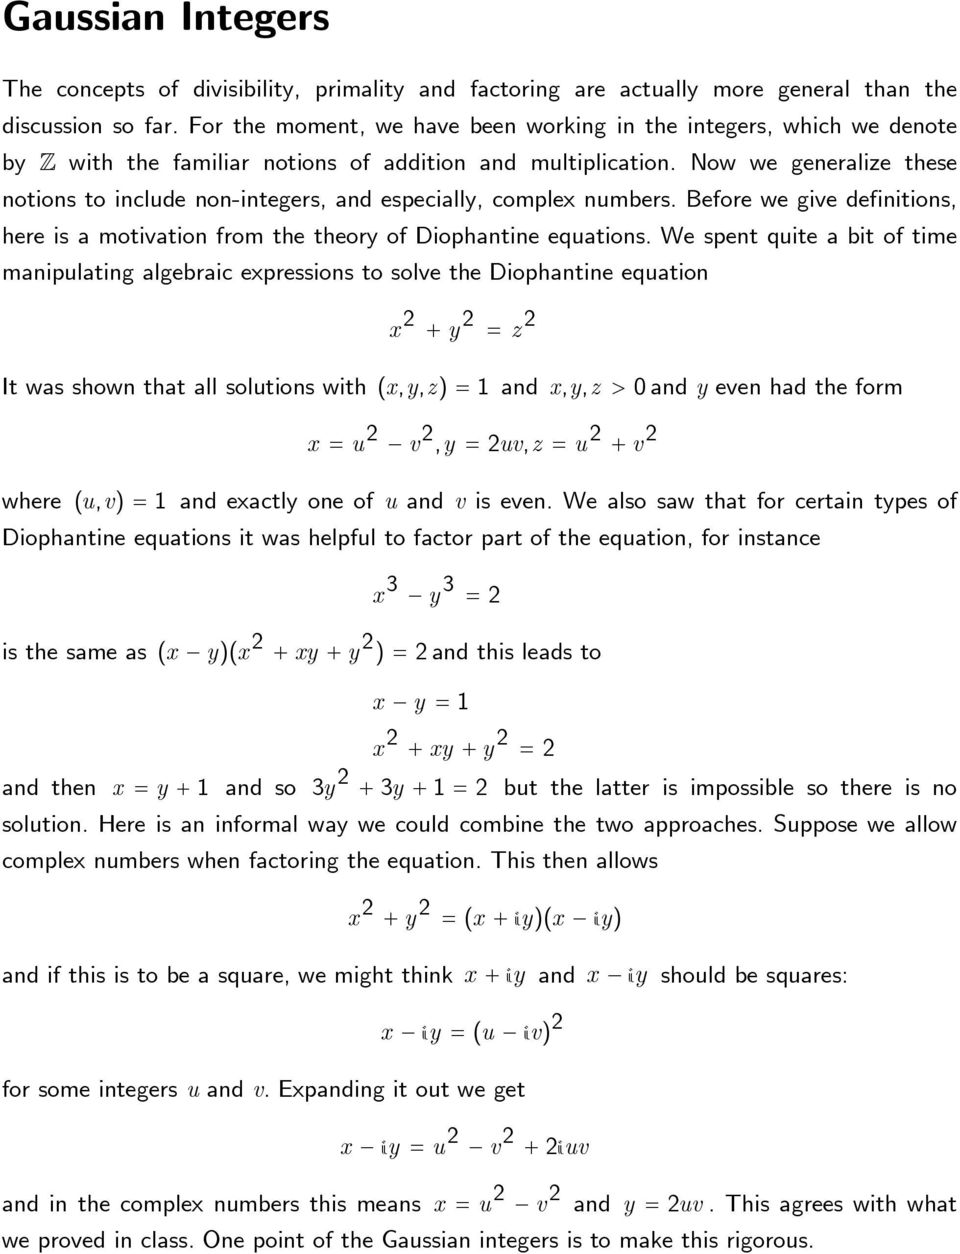 Now we generalize these notions to include non-integers, and especially, comple numbers. Before we give definitions, here is a motivation from the theory of Diophantine equations.